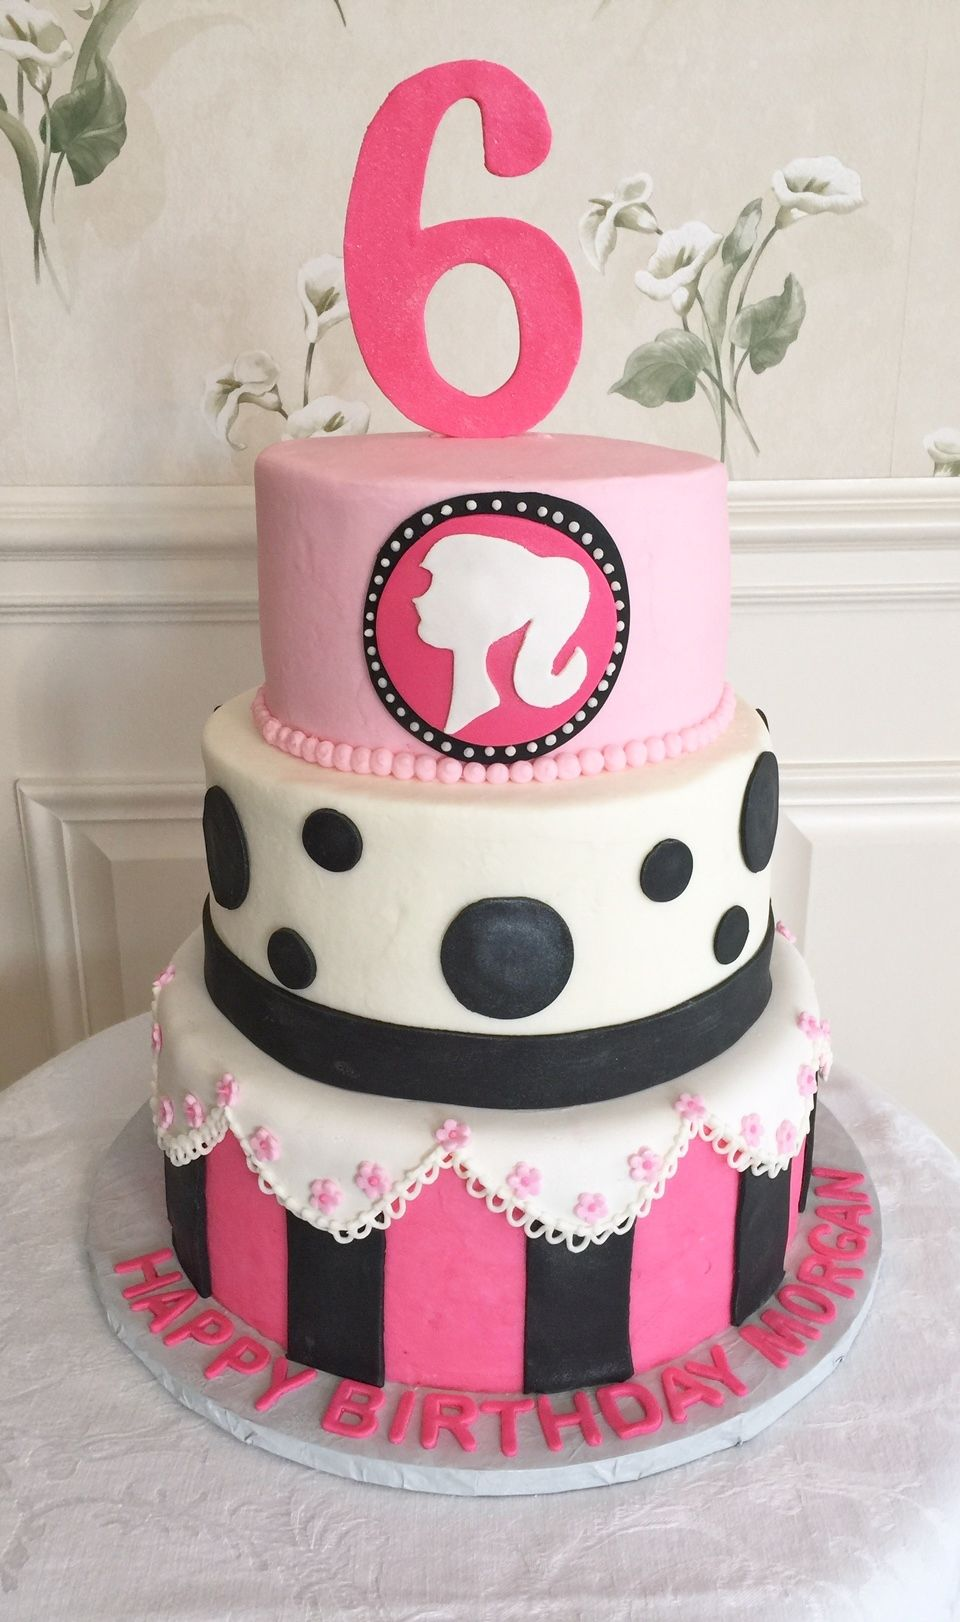 Barbie themed birthday cake Childrens Birthday Cakes Pinterest